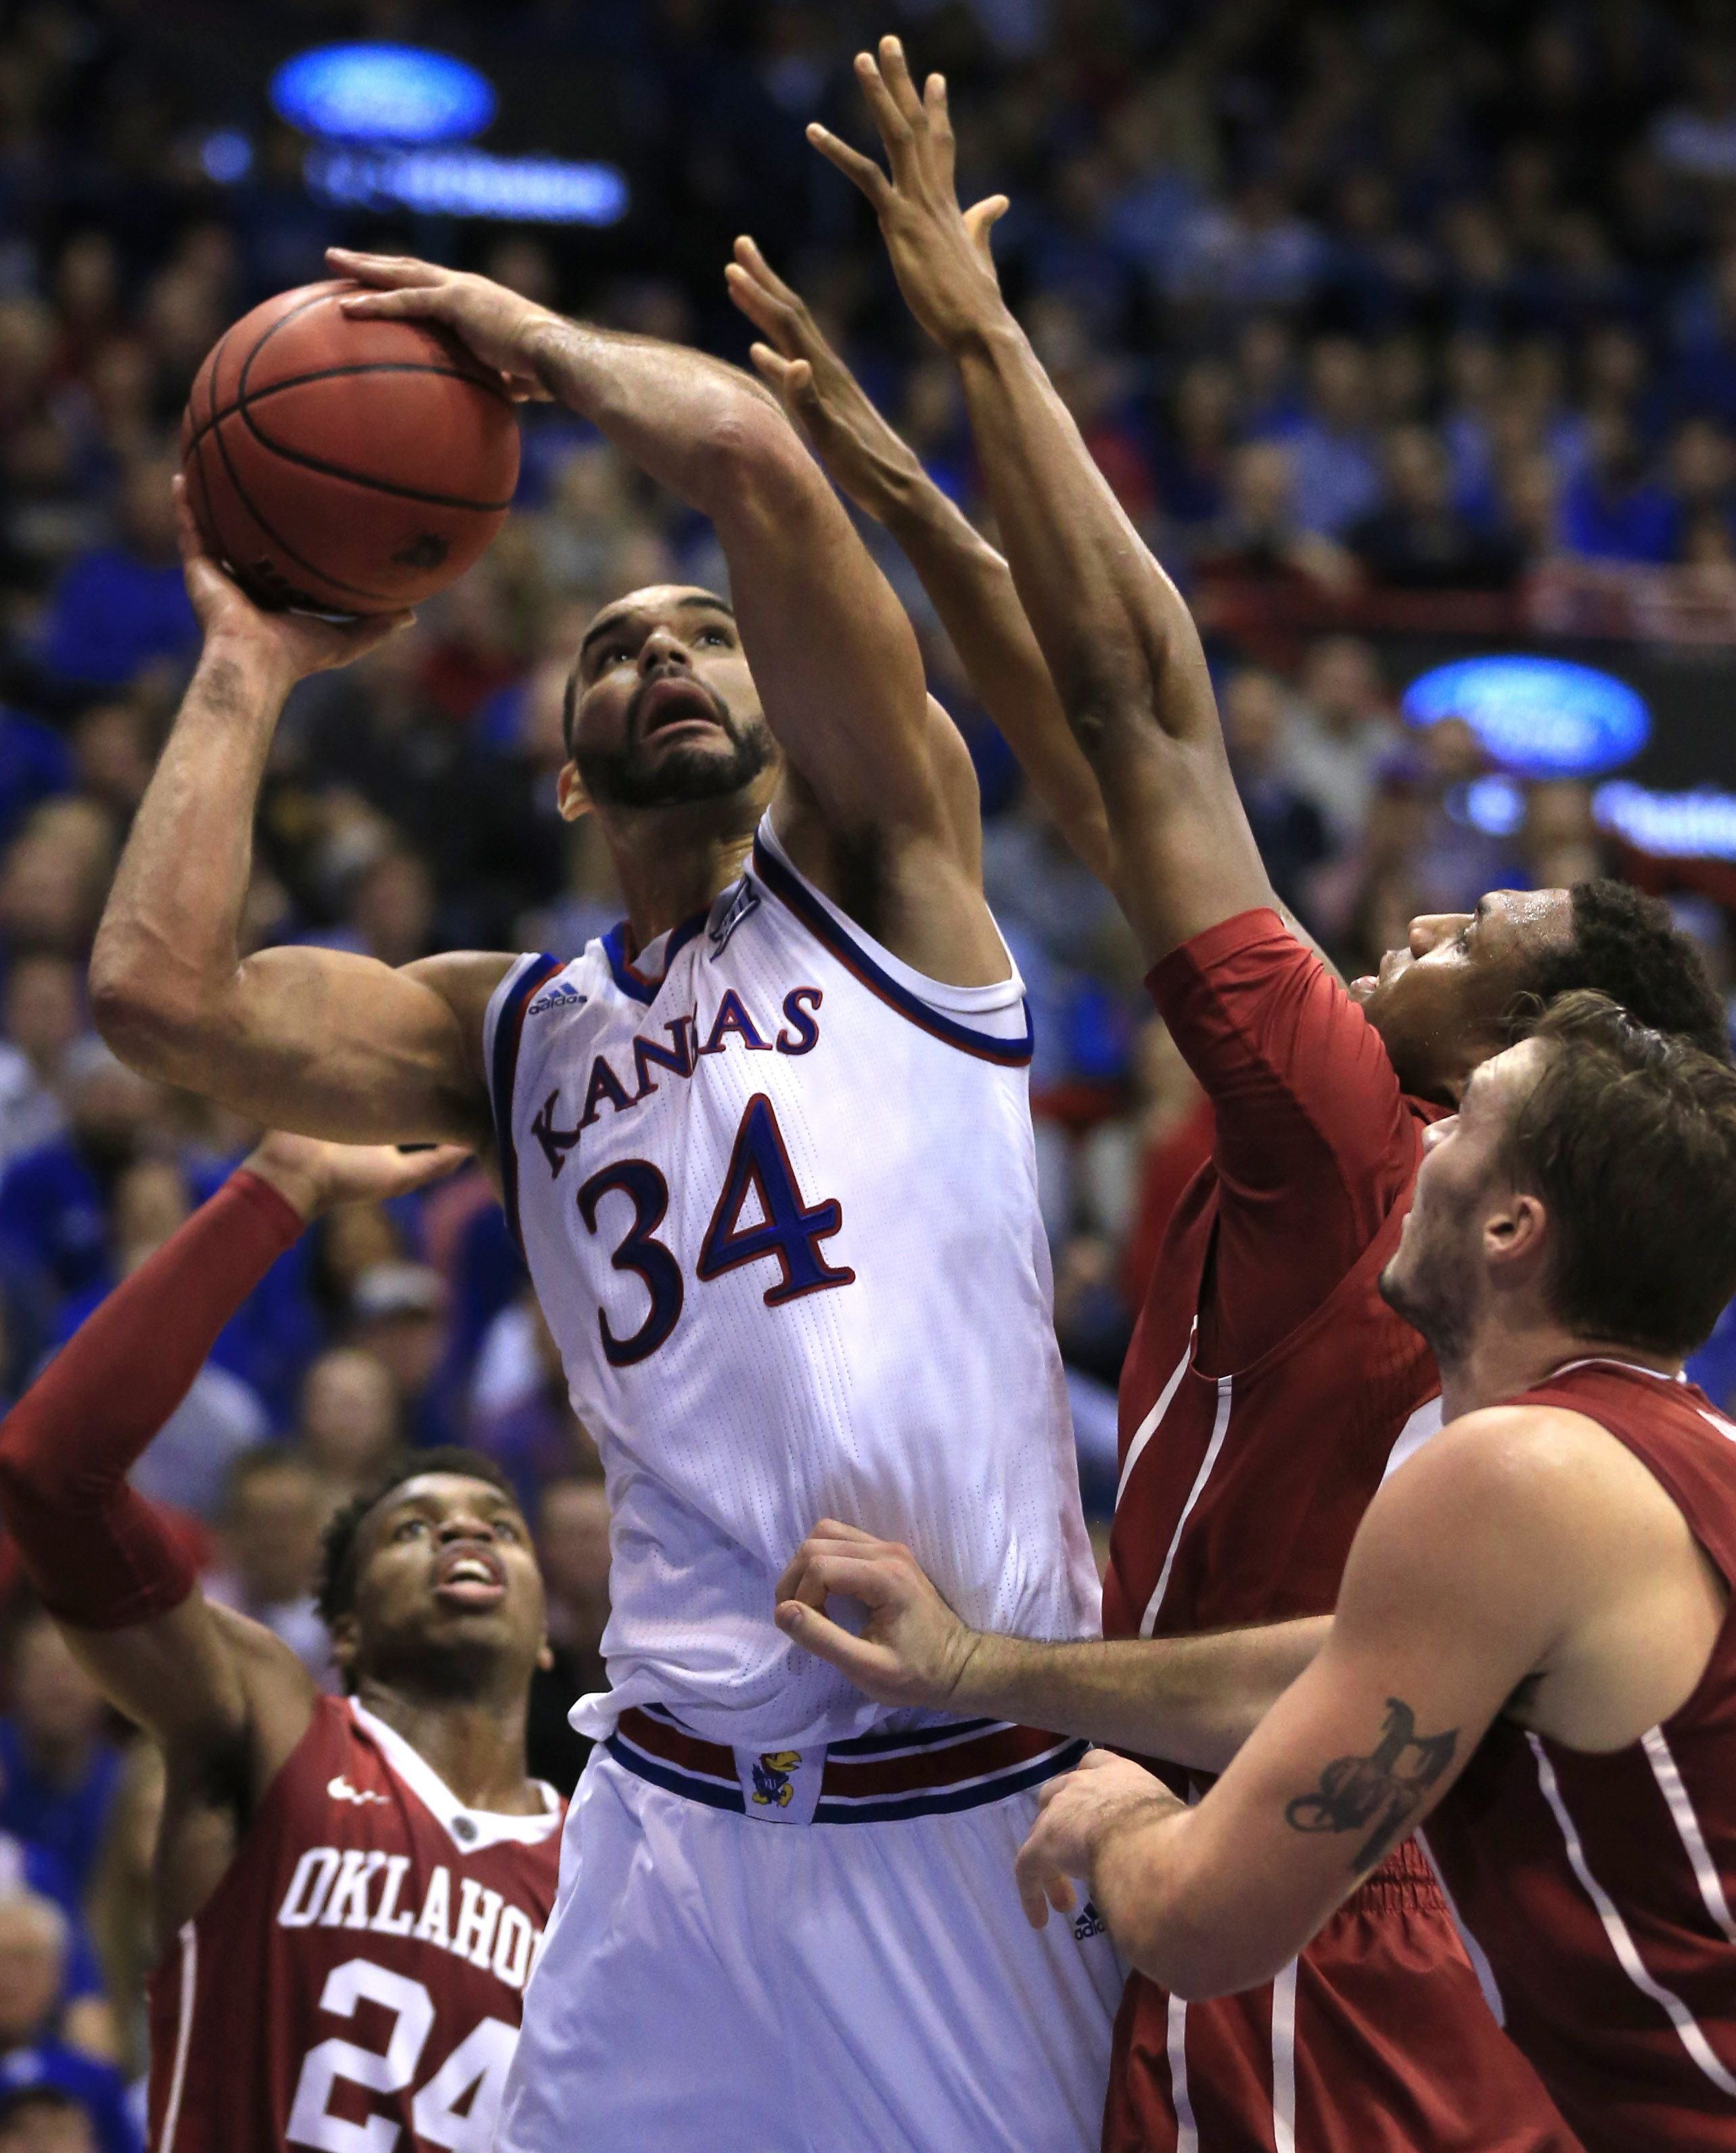 Kansas forward Perry Ellis (34) shoots while covered by three Oklahoma defenders during the first half of an NCAA college basketball game in Lawrence, Kan., Monday, Jan. 4, 2016. (AP Photo/Orlin Wagner)